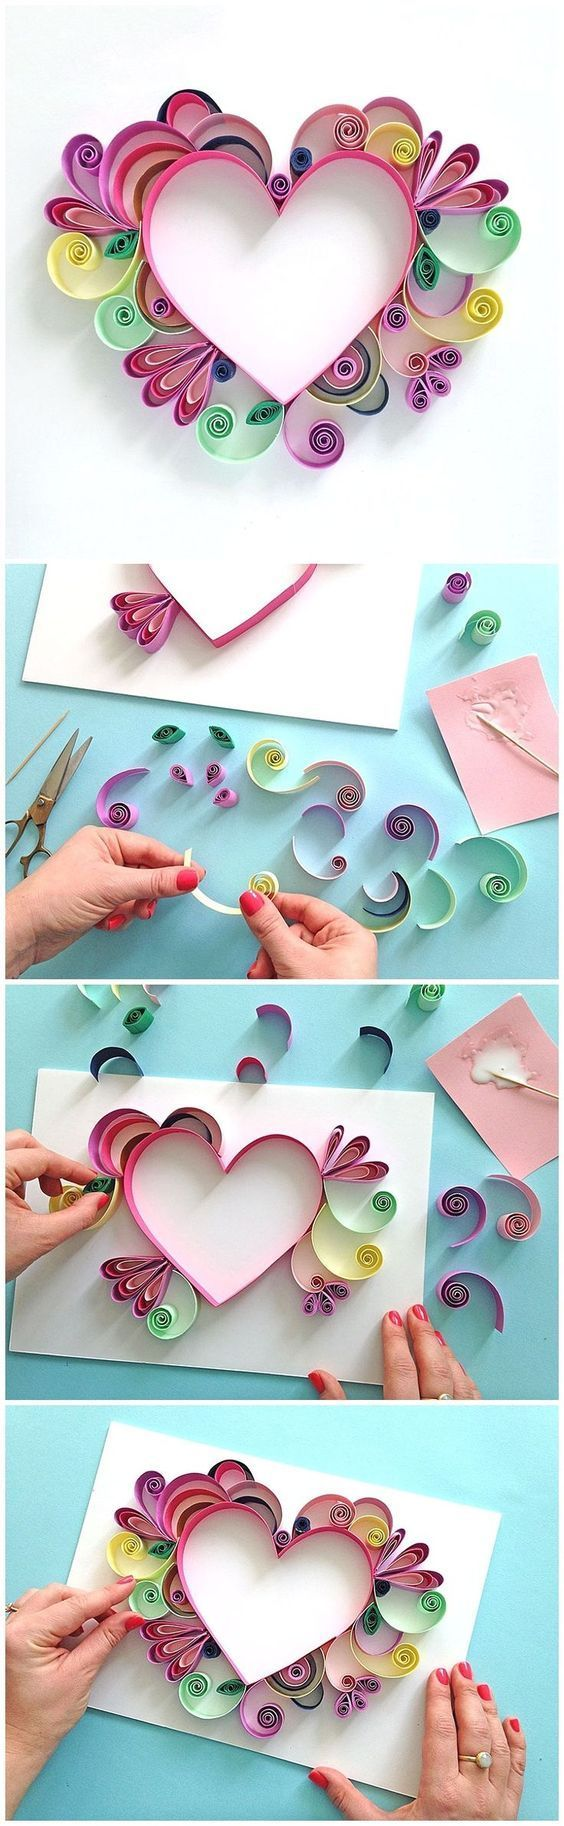 Learn How to Quill a darling Heart Shaped Mother's Day Paper Craft Gift Idea via Paper Chase - Moms and Grandmas will love these pretty handmade works of art! The BEST Easy DIY Mother's Day Gifts and Treats Ideas - Holiday Craft Activity Projects, Free Printables and Favorite Brunch Desserts Recipes for Moms and Grandmas: